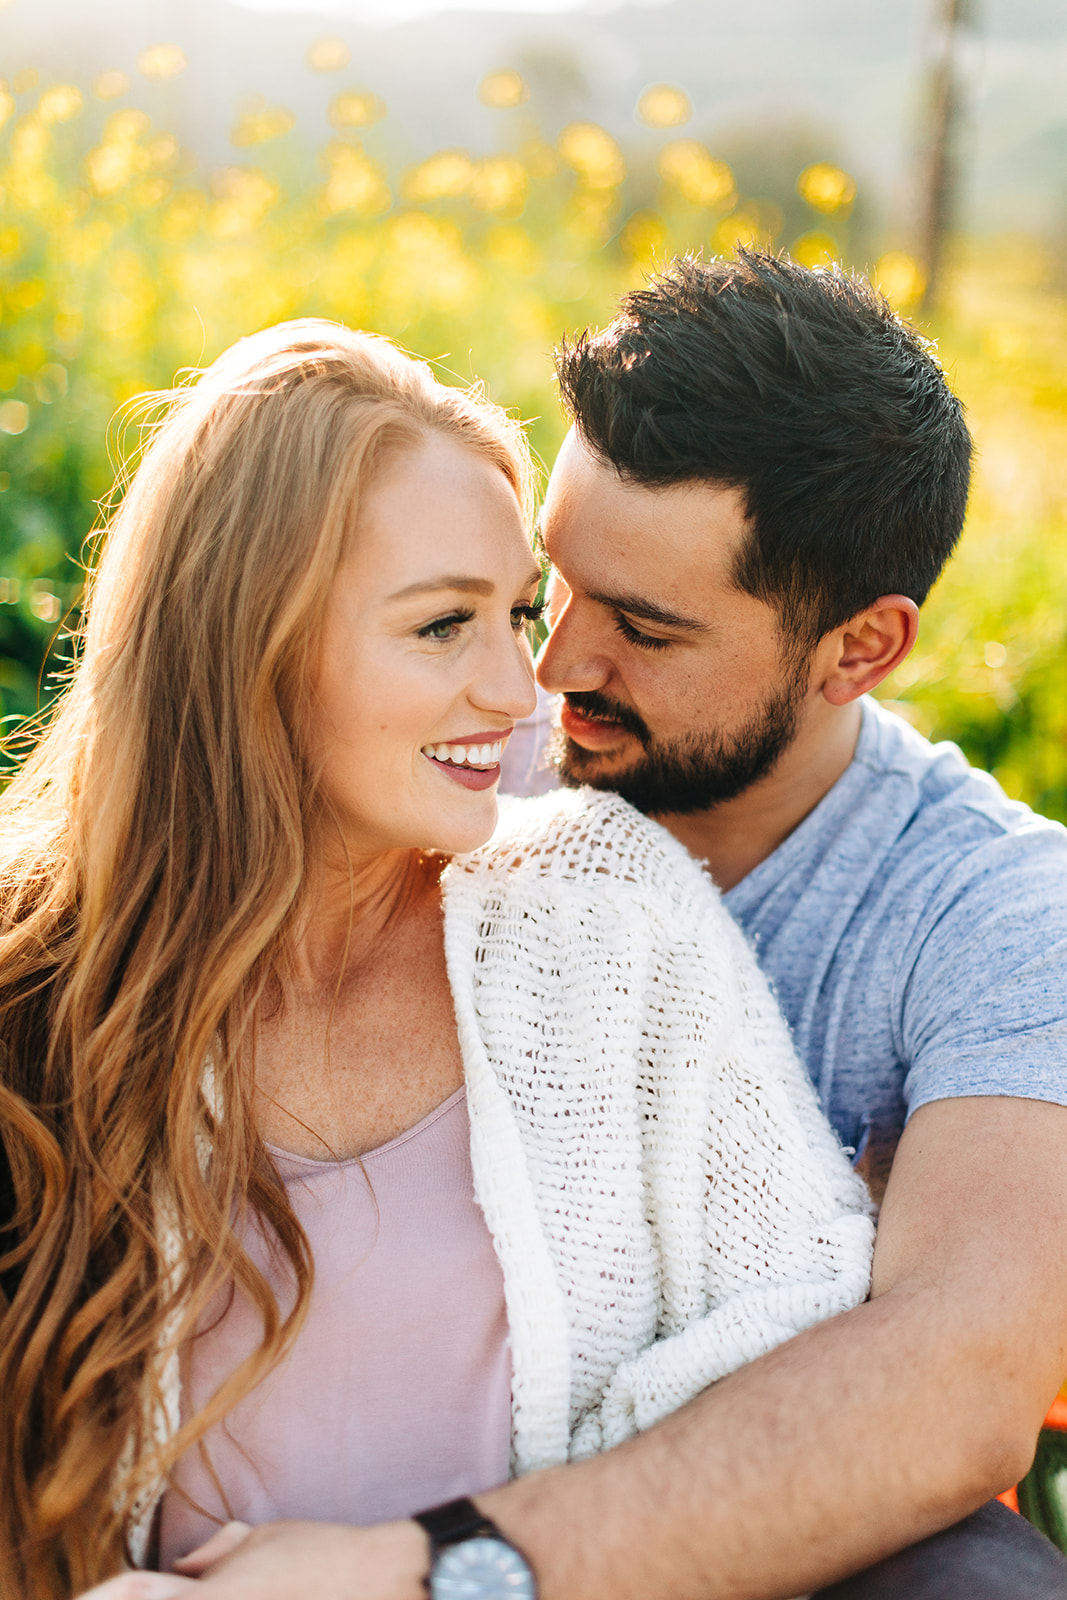 Katie-Yovin_Richard_Superbloom-Engagement-Photos_Clarisse-Rae_Southern-California-Wedding-Photographer-Orange-County-Engagement-Photos-14